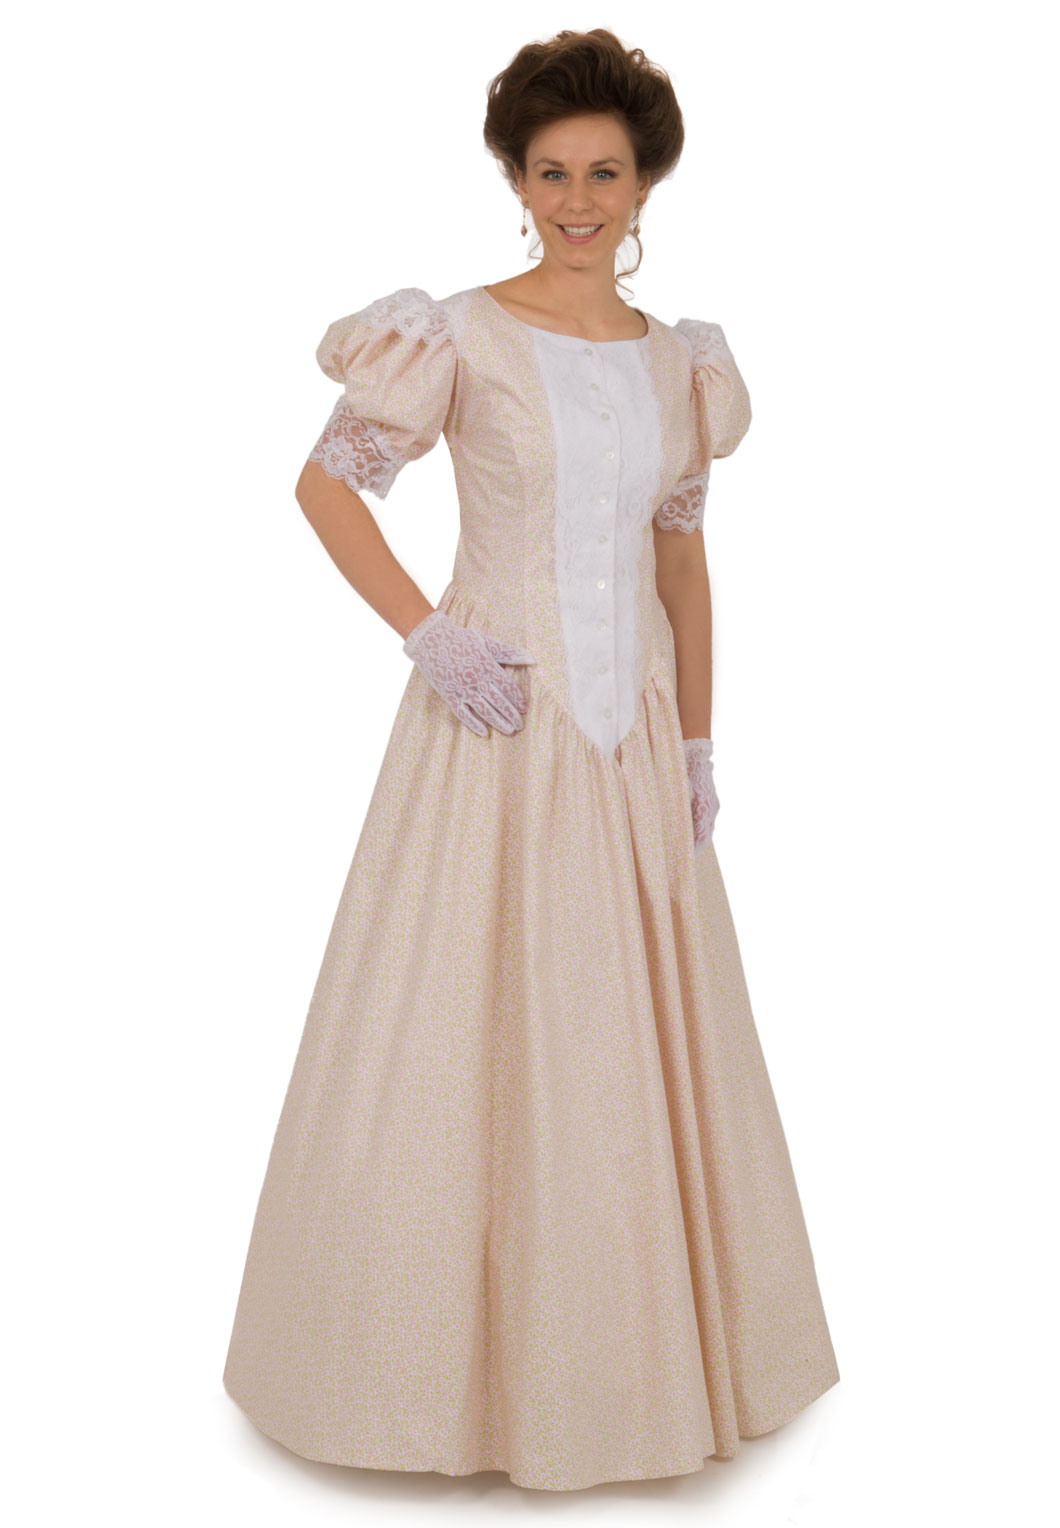 Old fashioned romantic dresses victorian